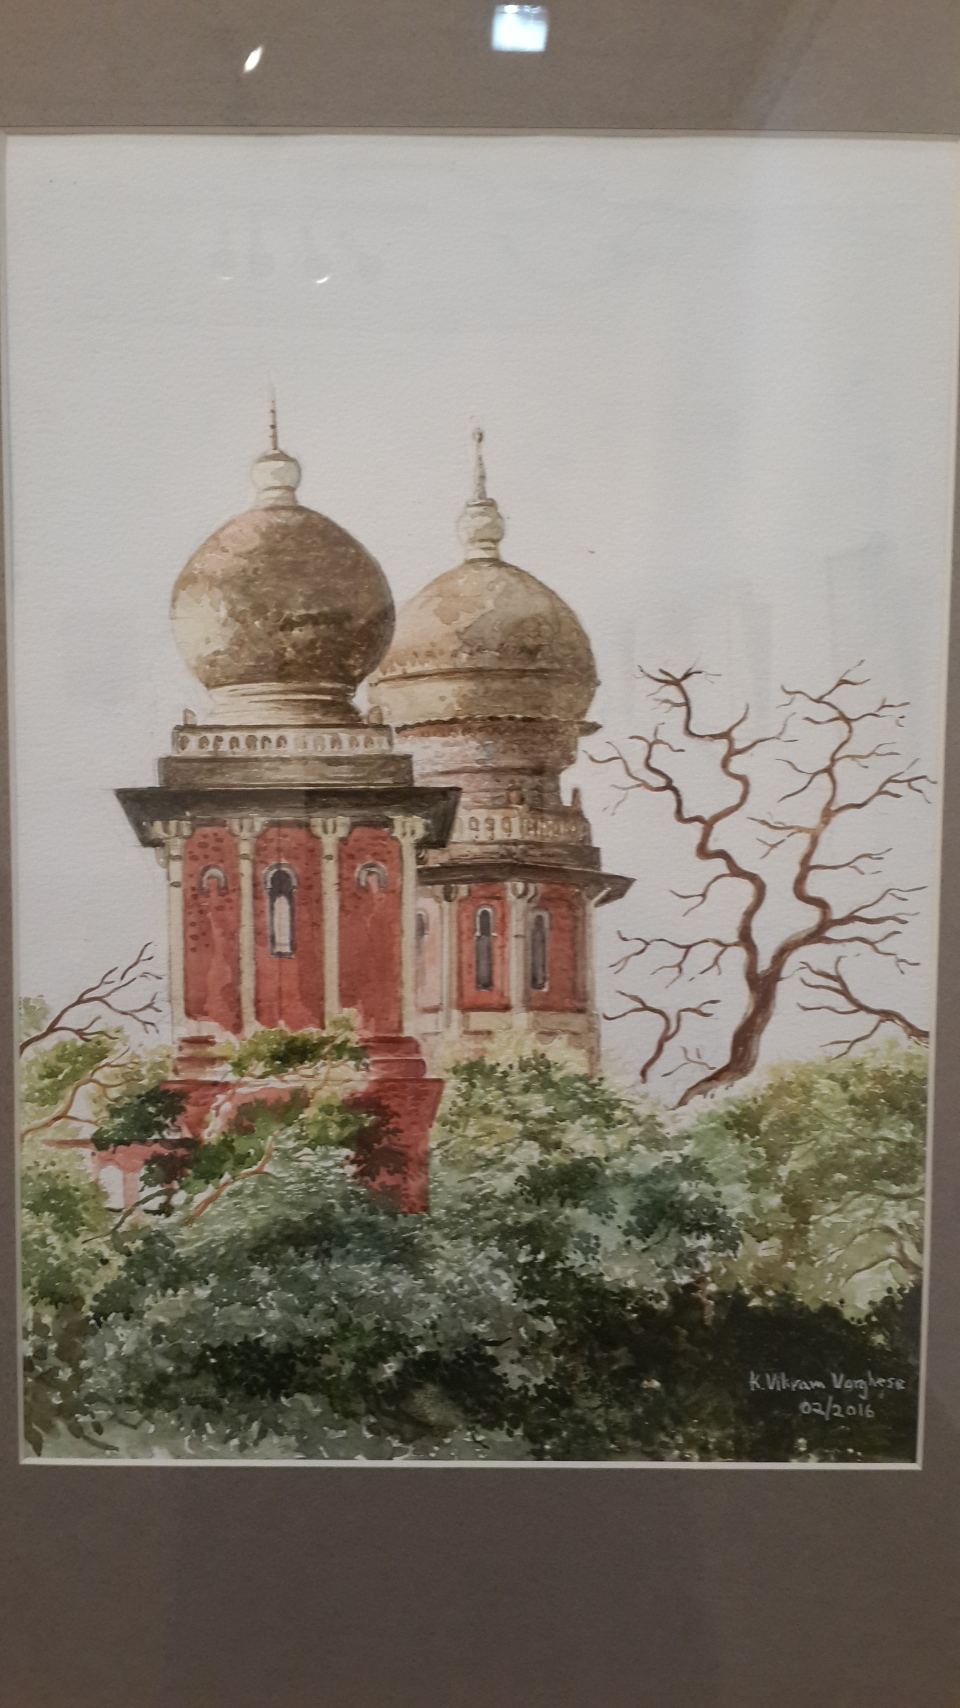 High Court building, Chennai, Indo-Saracenic architecture. Watercolor by Vikram Verghese